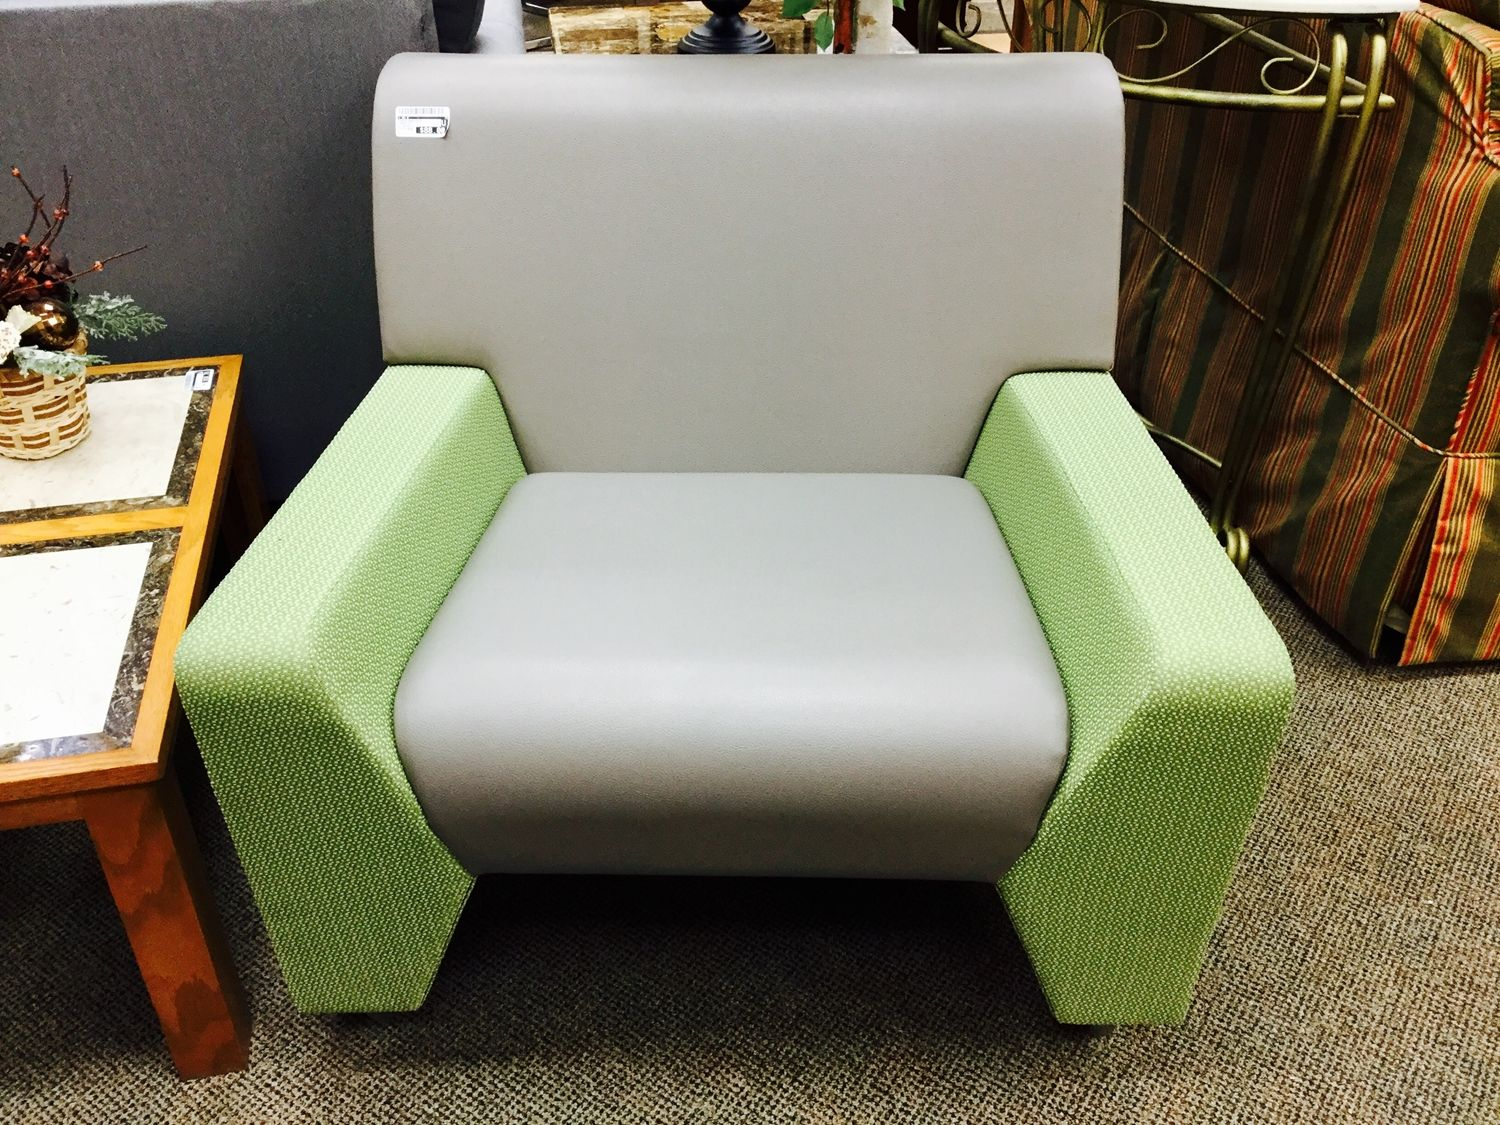 Find amazingly low prices on modern furniture at new uses fabulous grey green armchair